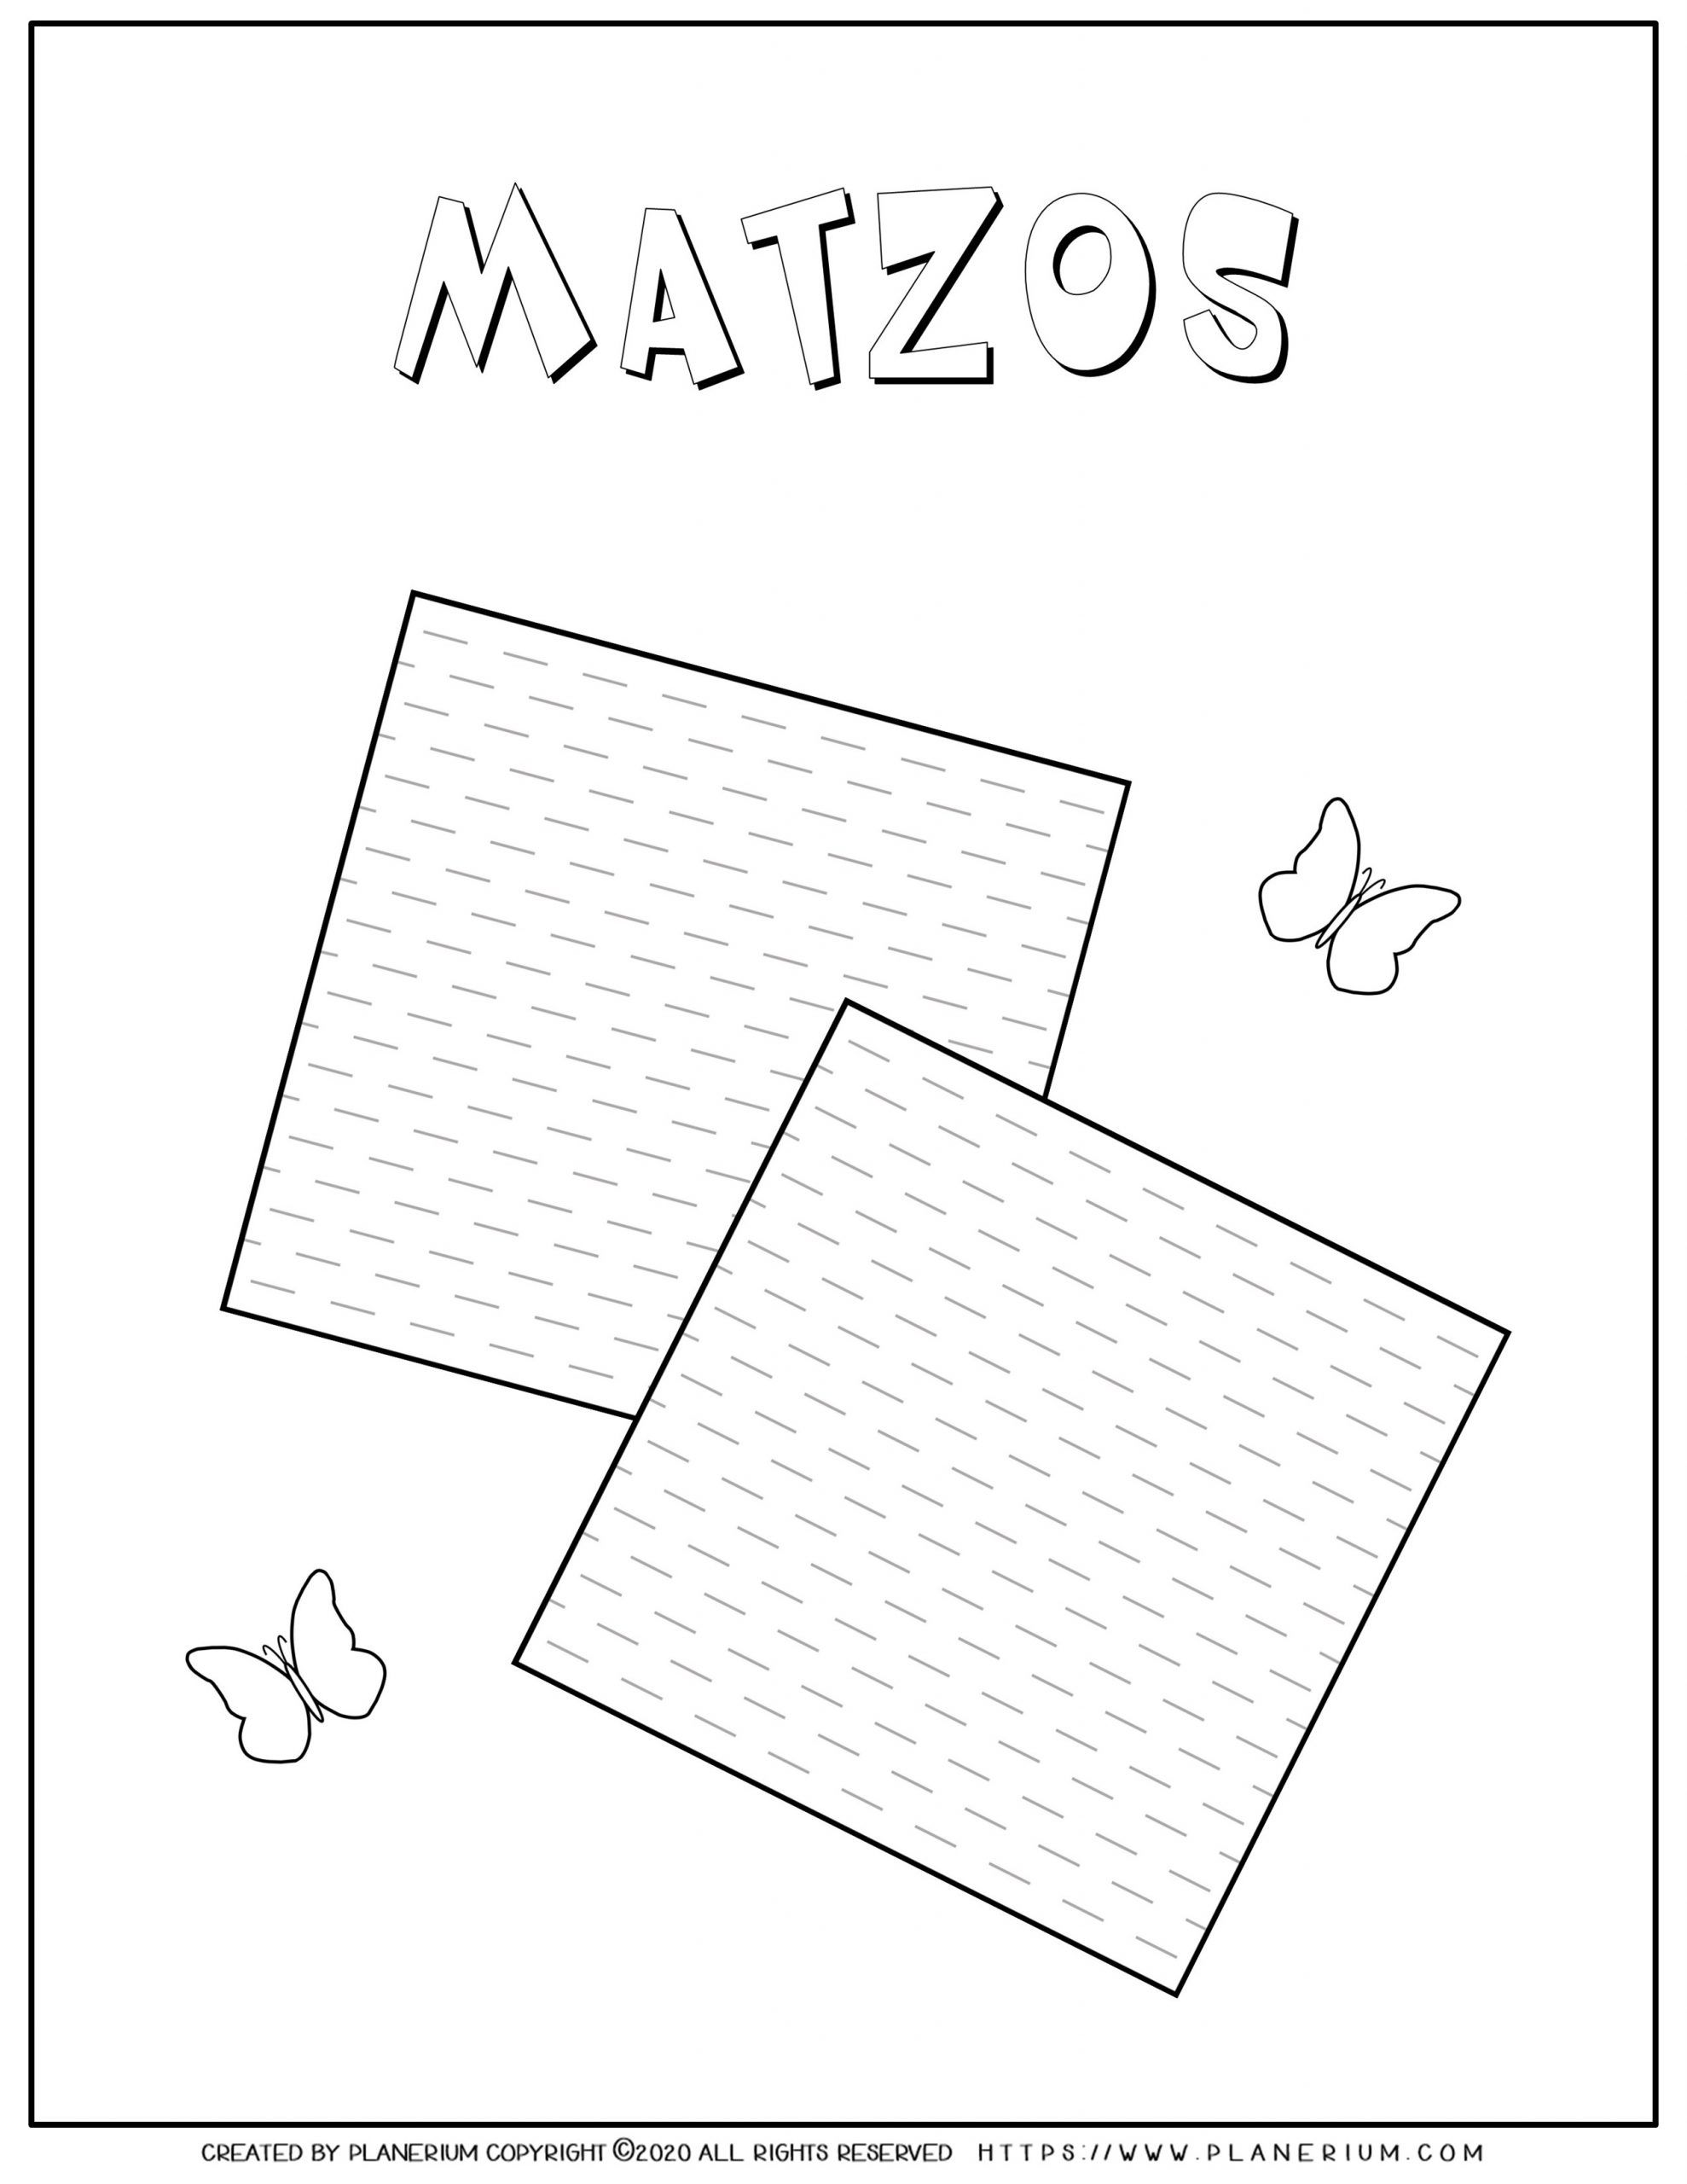 Passover coloring page - Two Matzos - English title